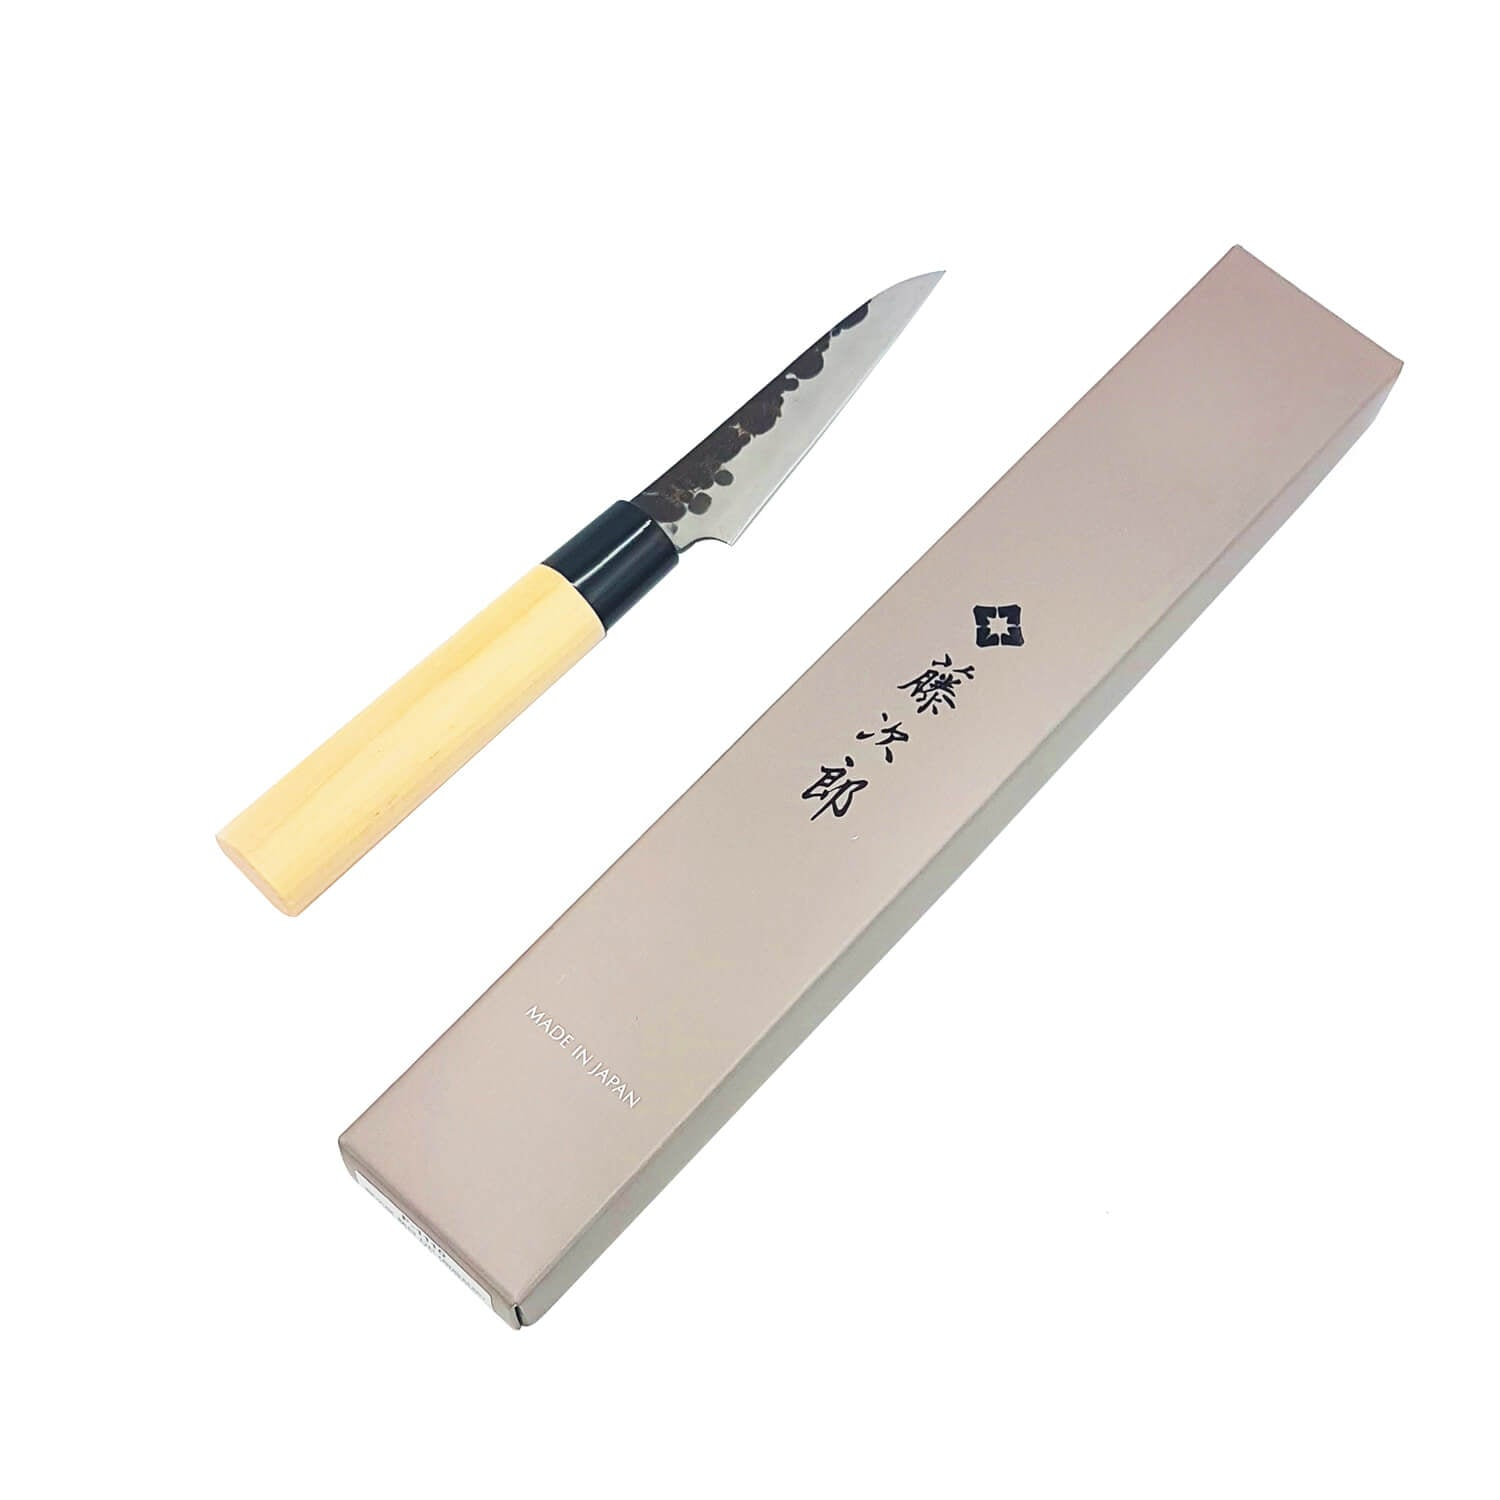 Tojiro Hammered Paring Knife 9cm - House of Knives